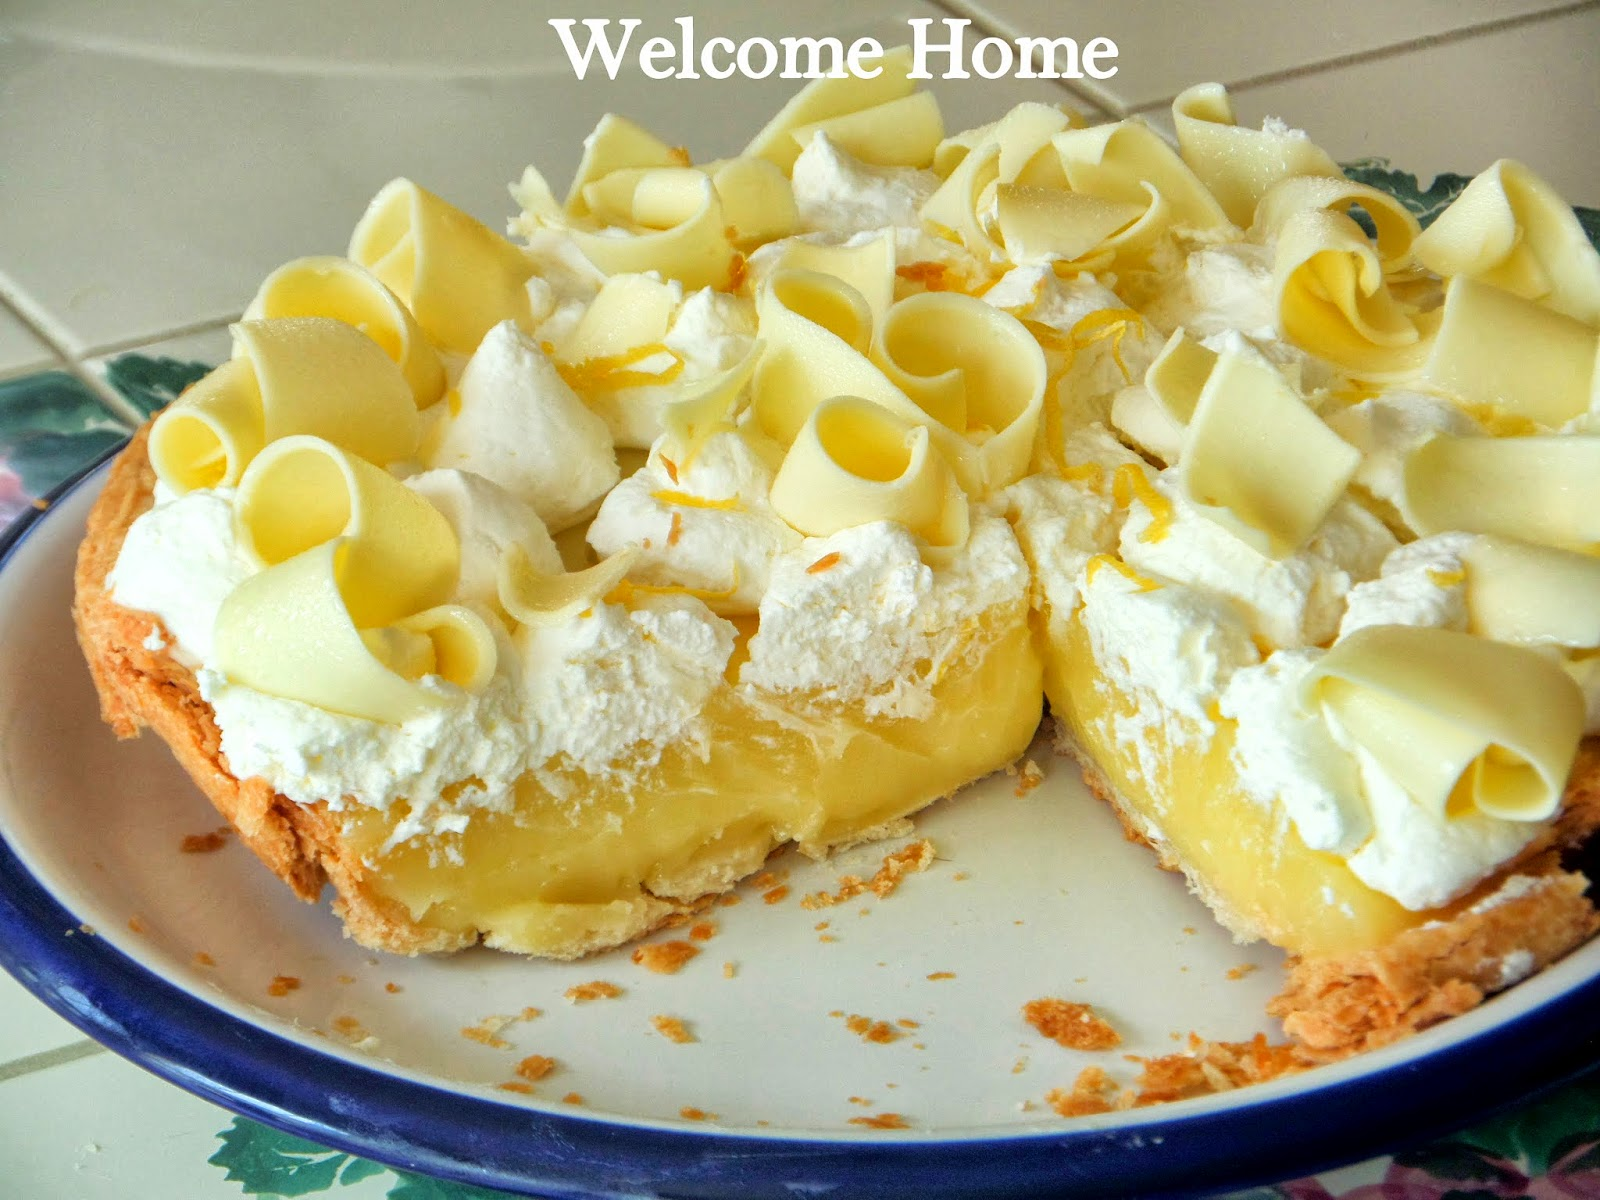 Welcome Home Blog: ♥ Mom's Lemon Cream Pie